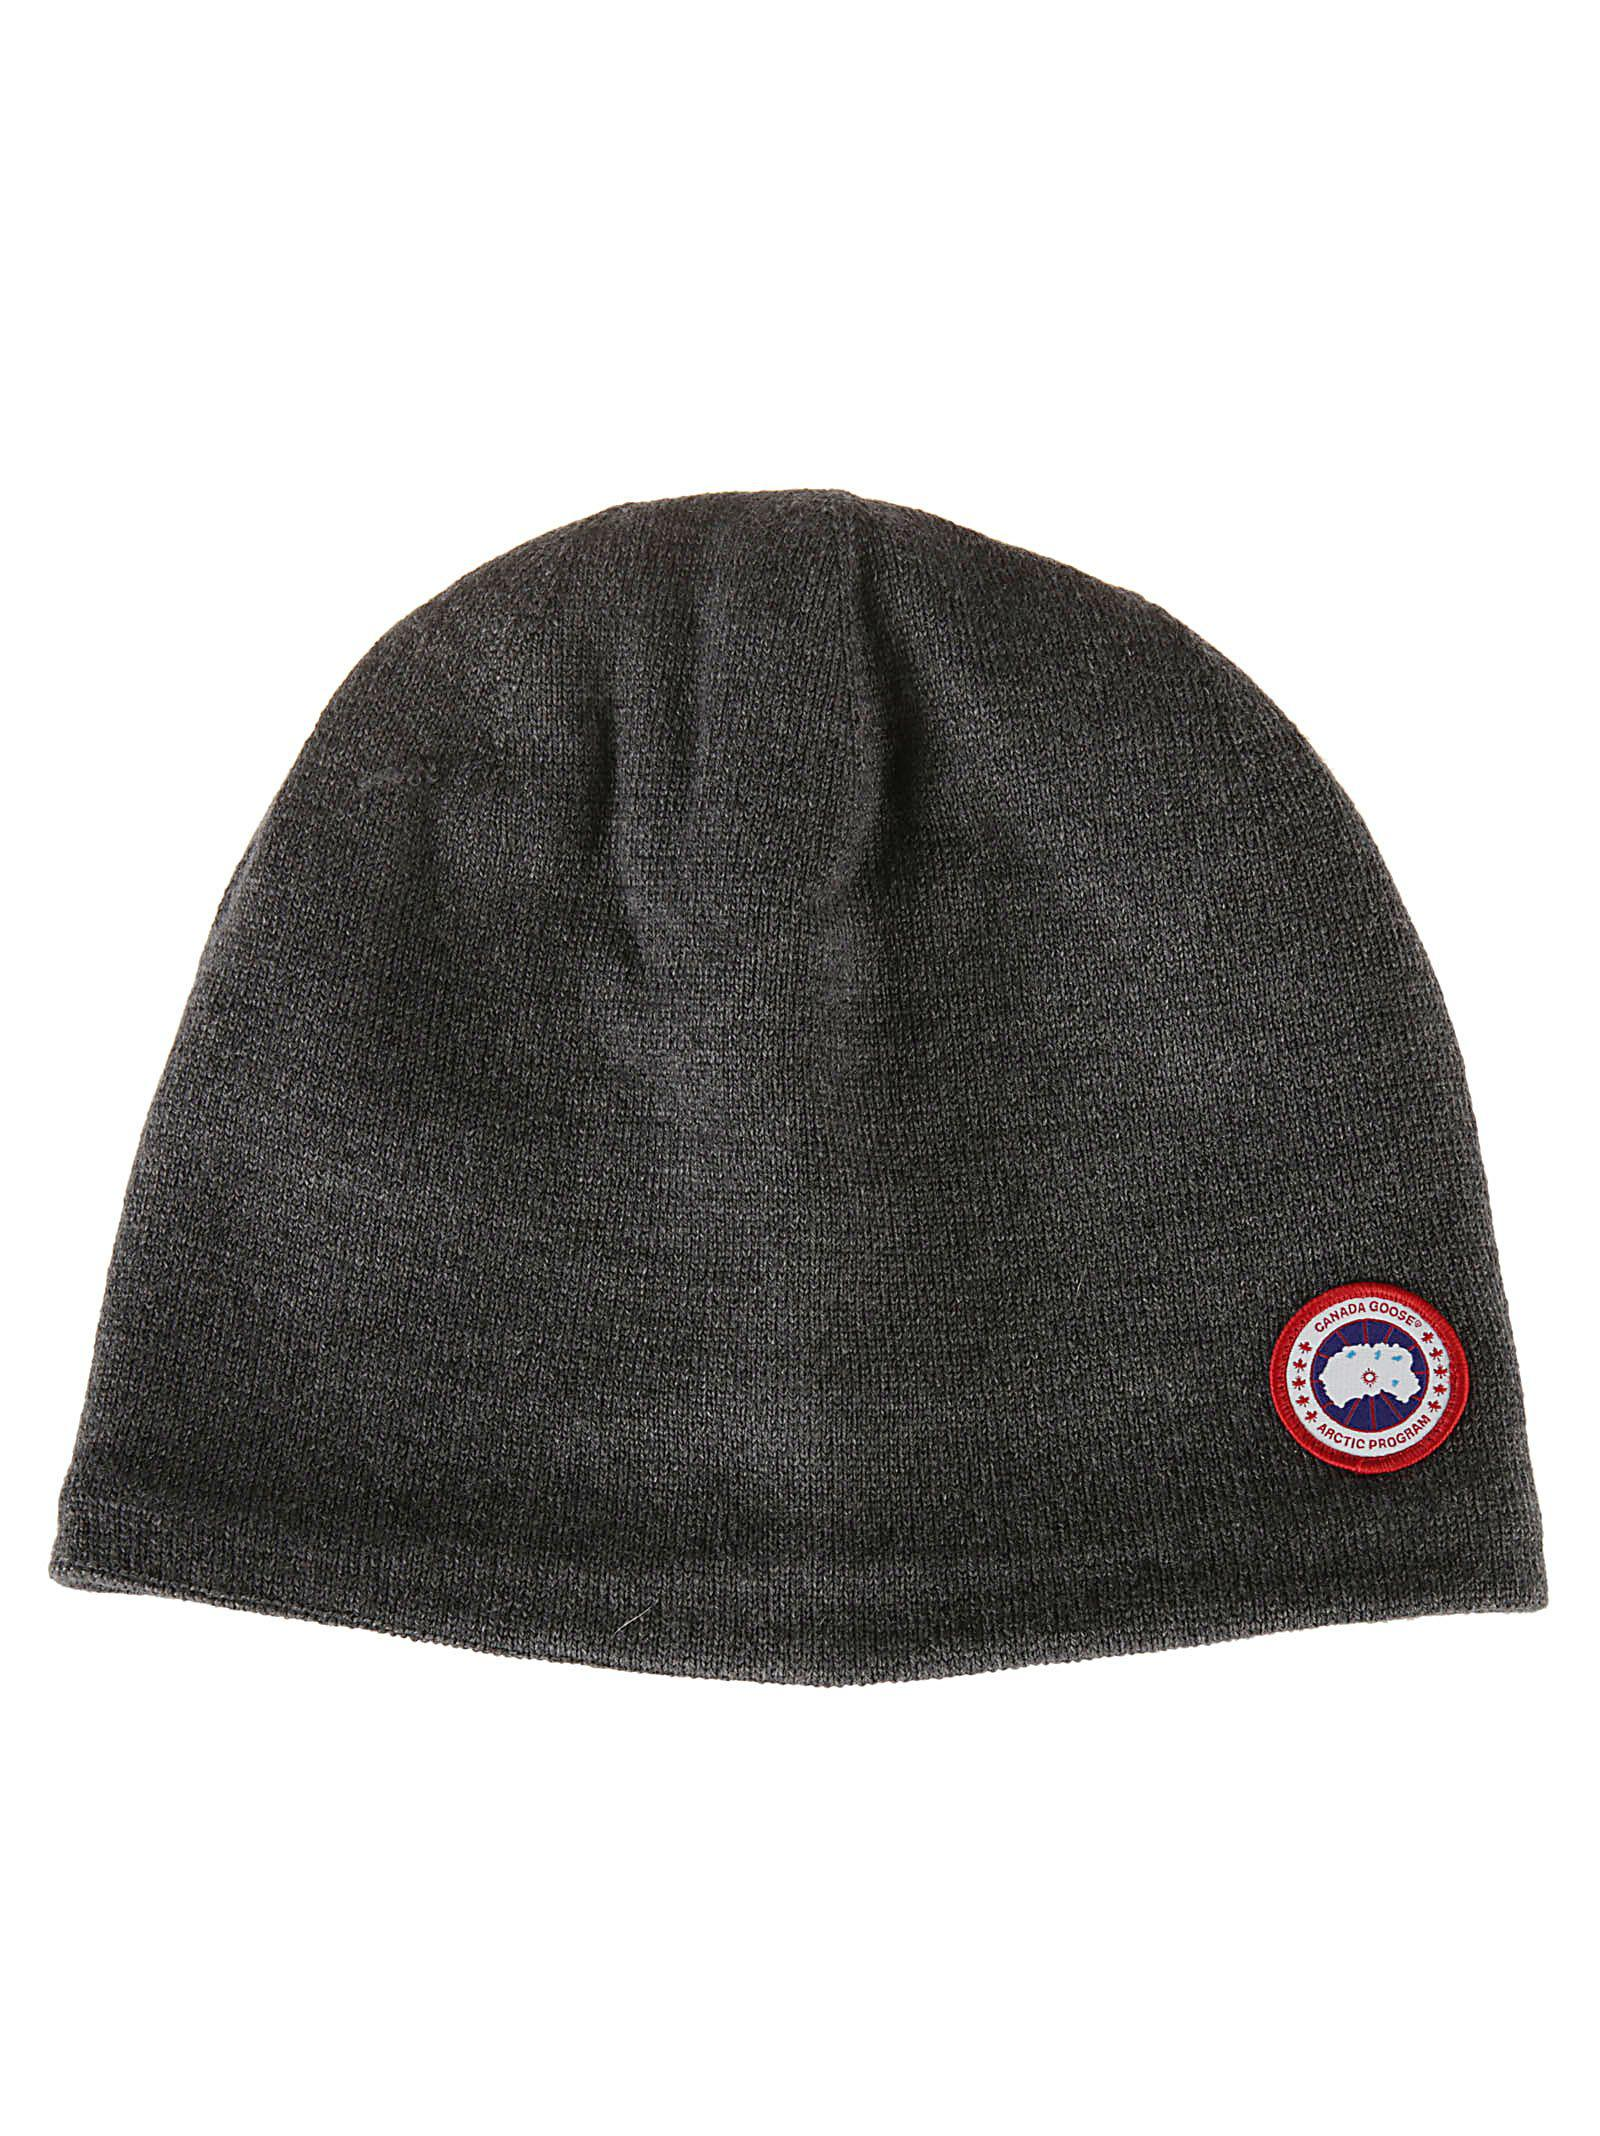 3213d0a0c4b500 Canada Goose Standard Toque Beanie In Iron Grey | ModeSens